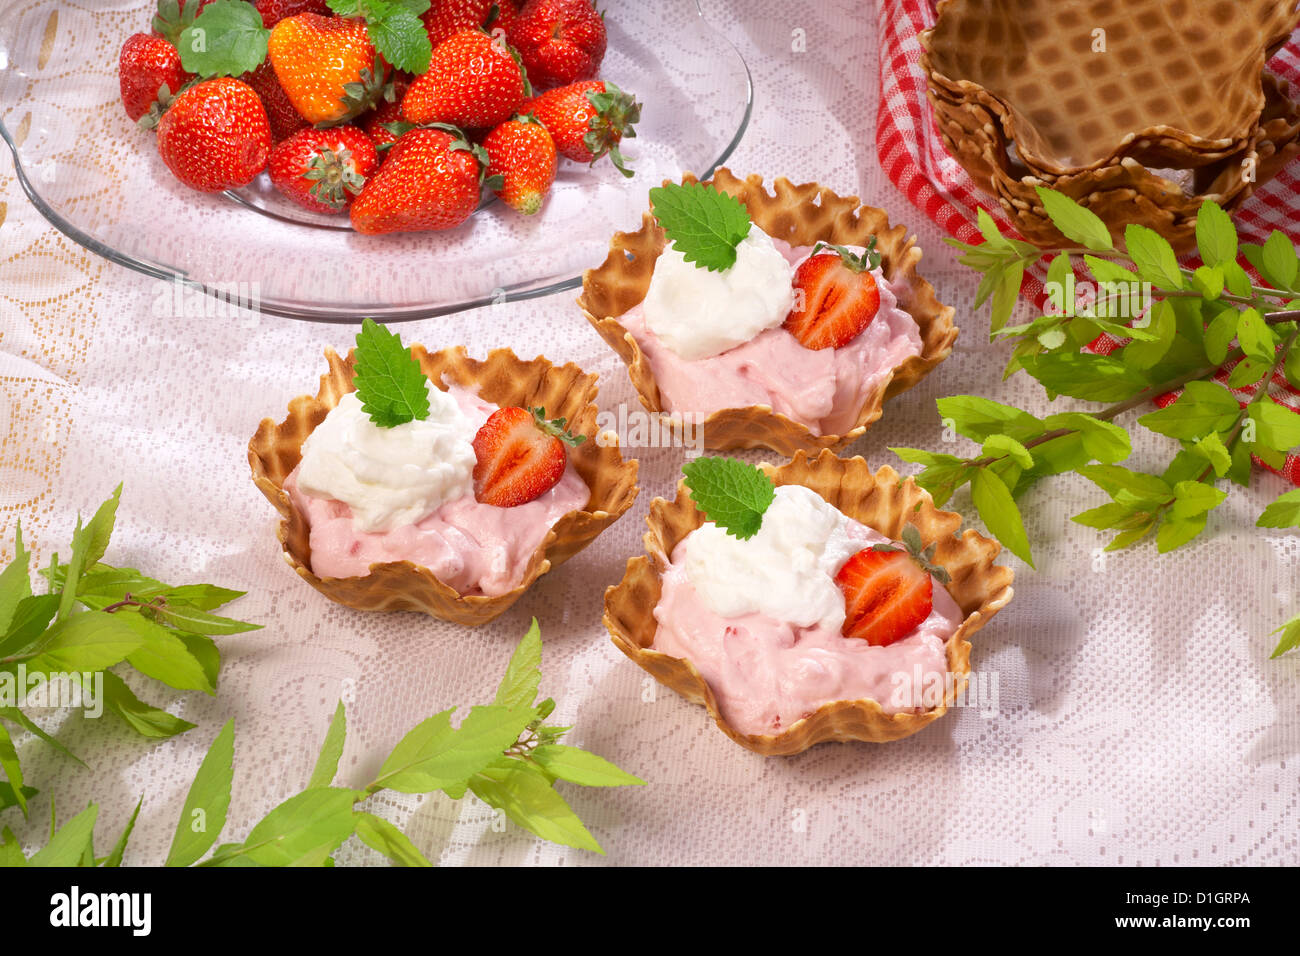 Cupcakes with strawberry mousse - Stock Image